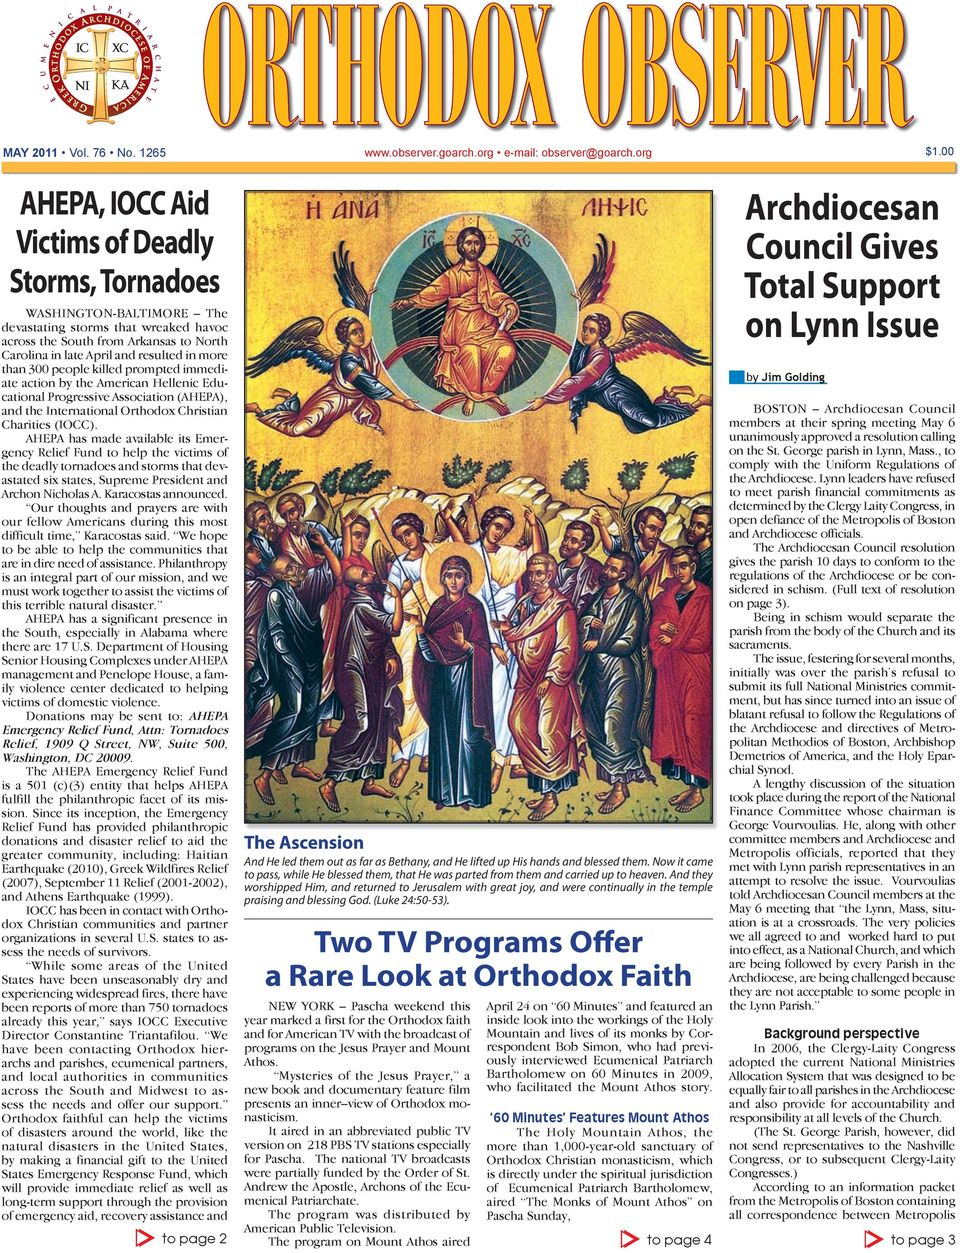 more than 300 people killed prompted immediate action by the American Hellenic Educational Progressive Association (AHEPA), and the International Orthodox Christian Charities (IOCC).